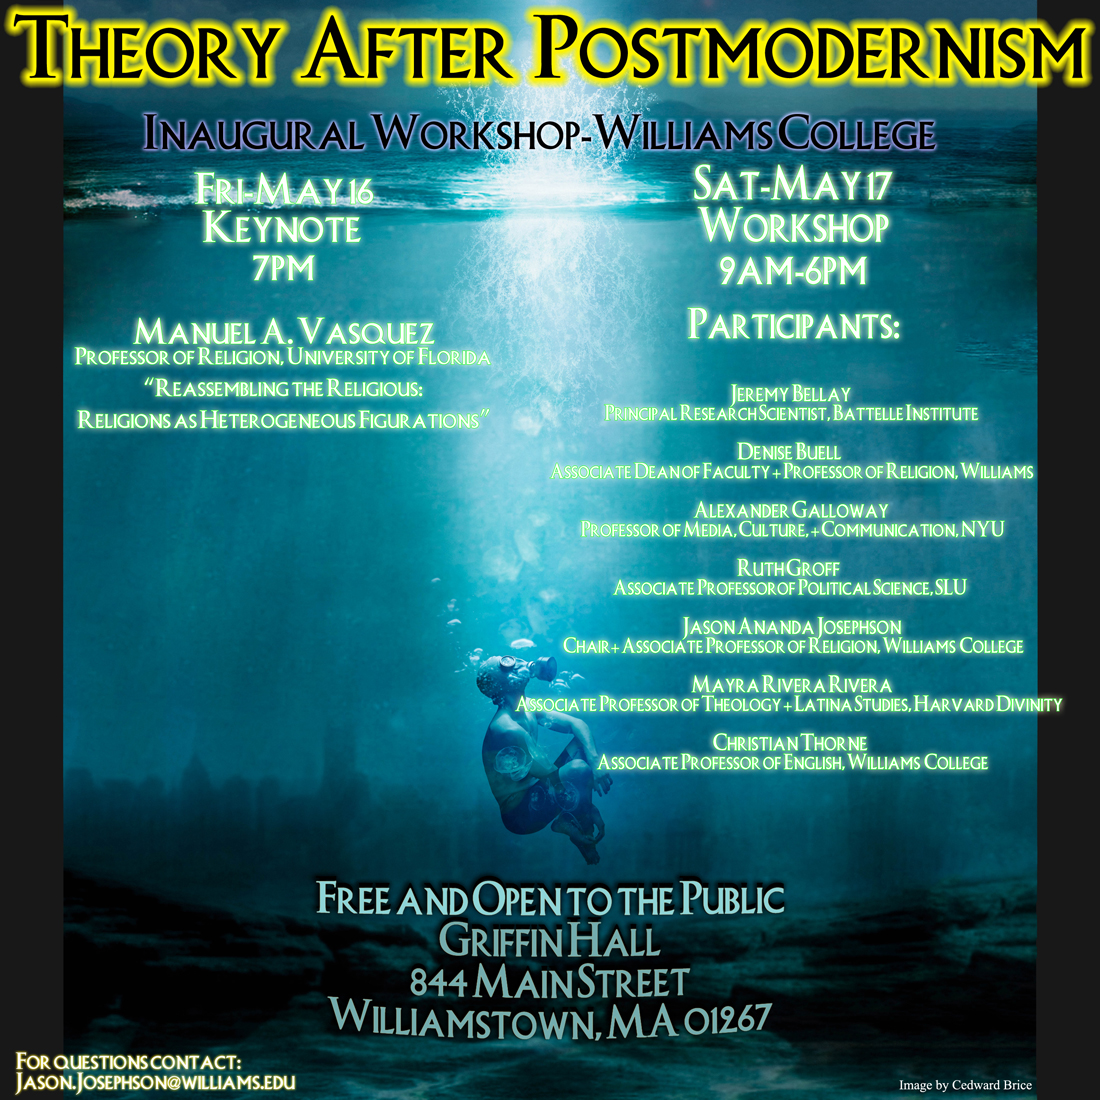 What would be a good dissertation topic for the political theory of postmodernism?